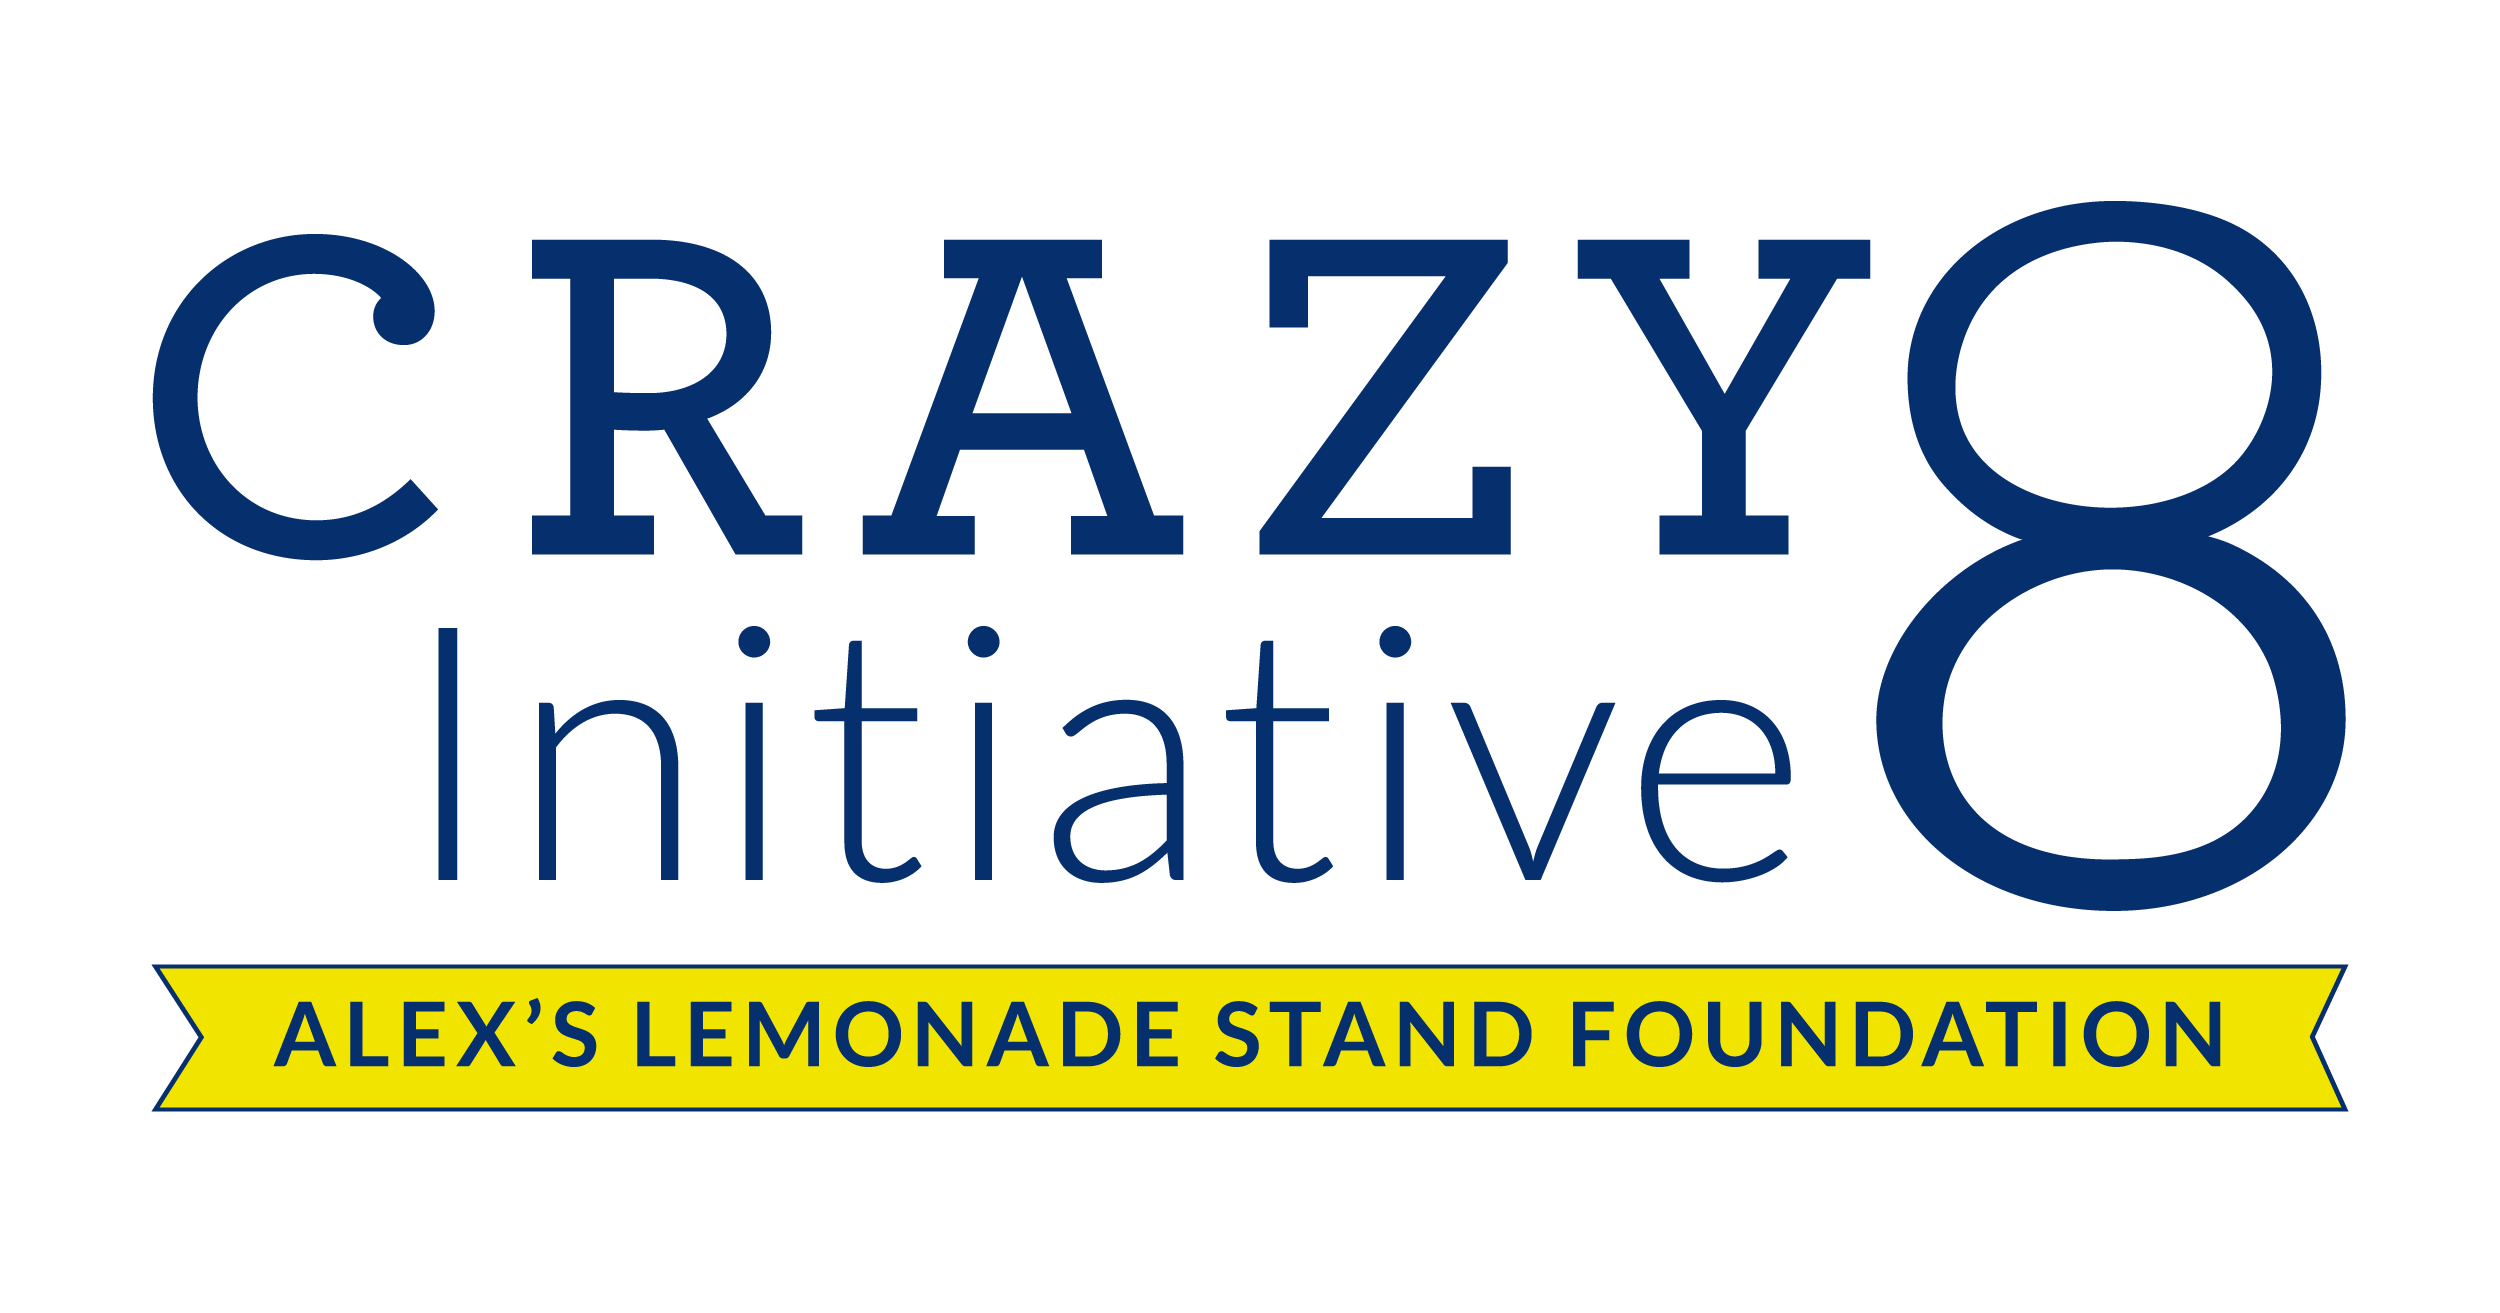 The Crazy 8 Initiative | Alex's Lemonade Stand Foundation